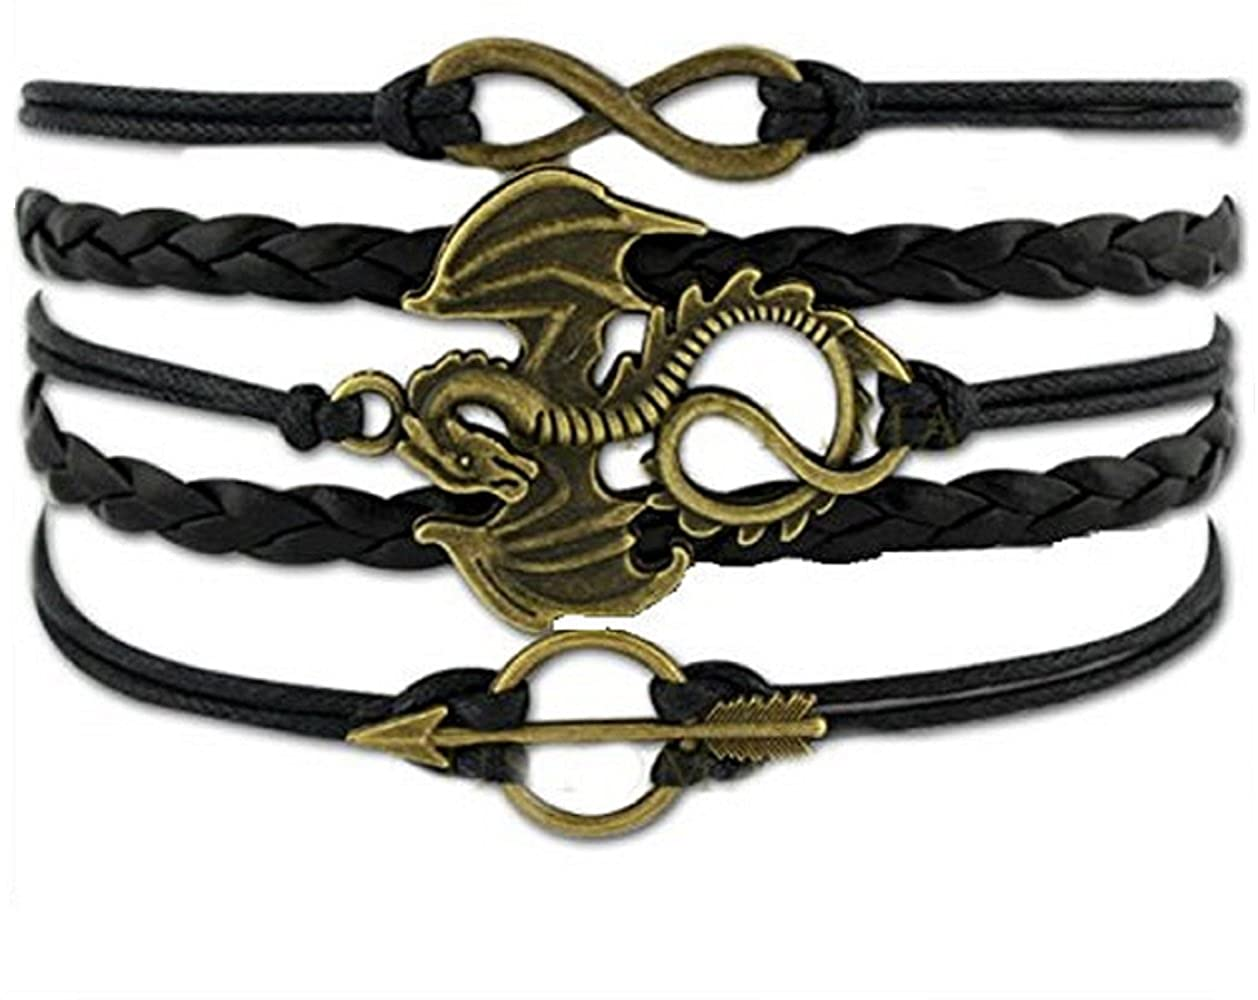 Game of Thrones bracelet song of ice and fire  bronze dragon